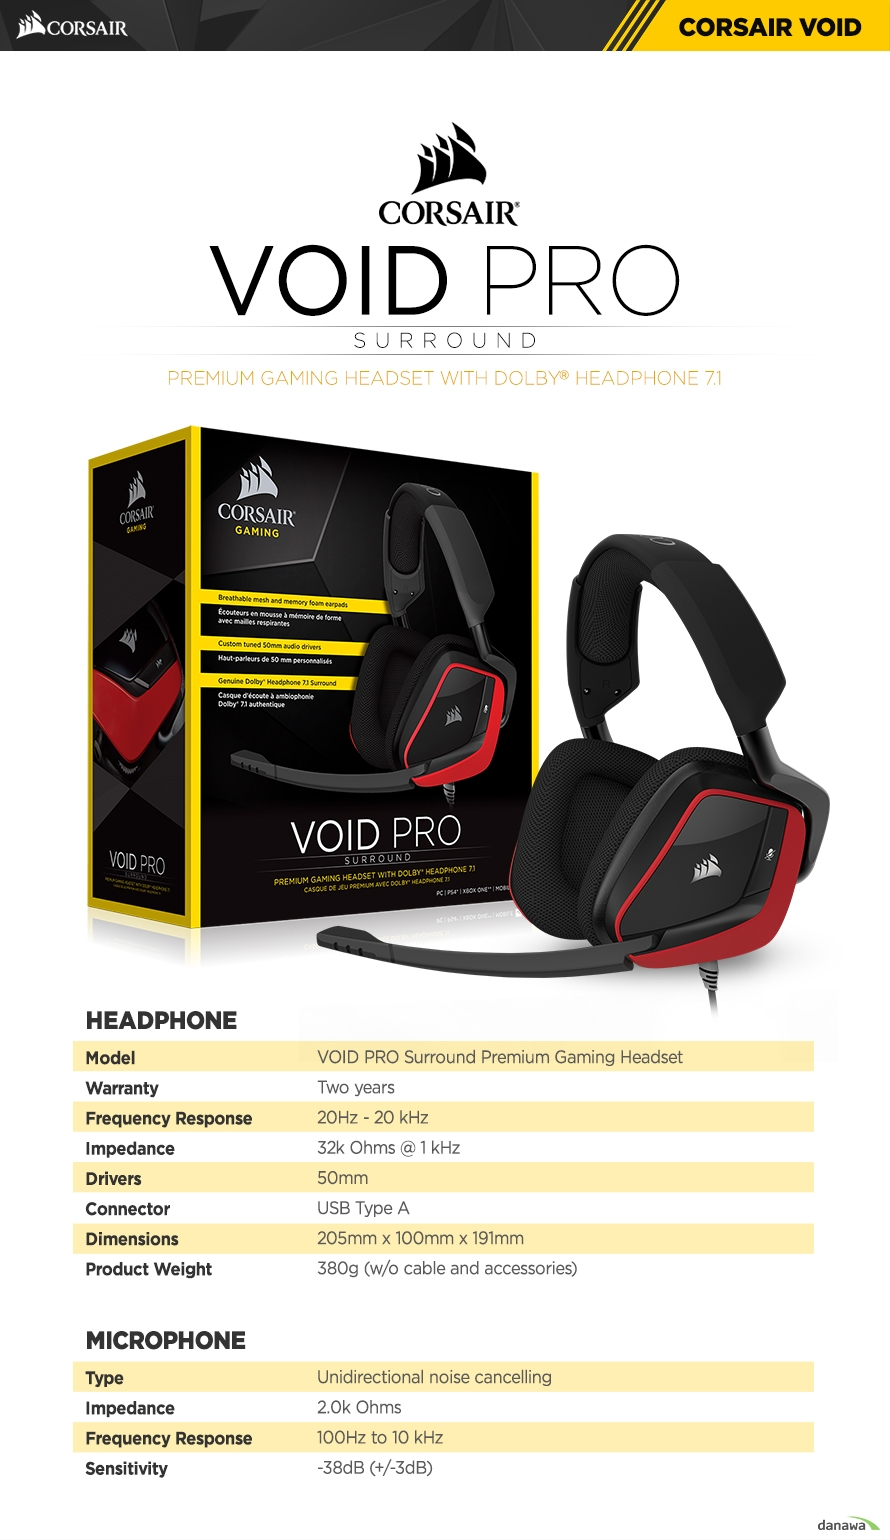 HEADPHONE	Model	VOID PRO Surround Premium Gaming HeadsetWarranty	Two yearsFrequency Response	20Hz - 20 kHzImpedance	32k Ohms @ 1 kHzDrivers	50mmConnector	USB Type ADimensions	205mm x 100mm x 191mmProduct Weight	380g (w/o cable and accessories)	MICROPHONE	Type	Unidirectional noise cancellingImpedance	2.0k OhmsFrequency Response	100Hz to 10 kHzSensitivity	-38dB (+/-3dB)